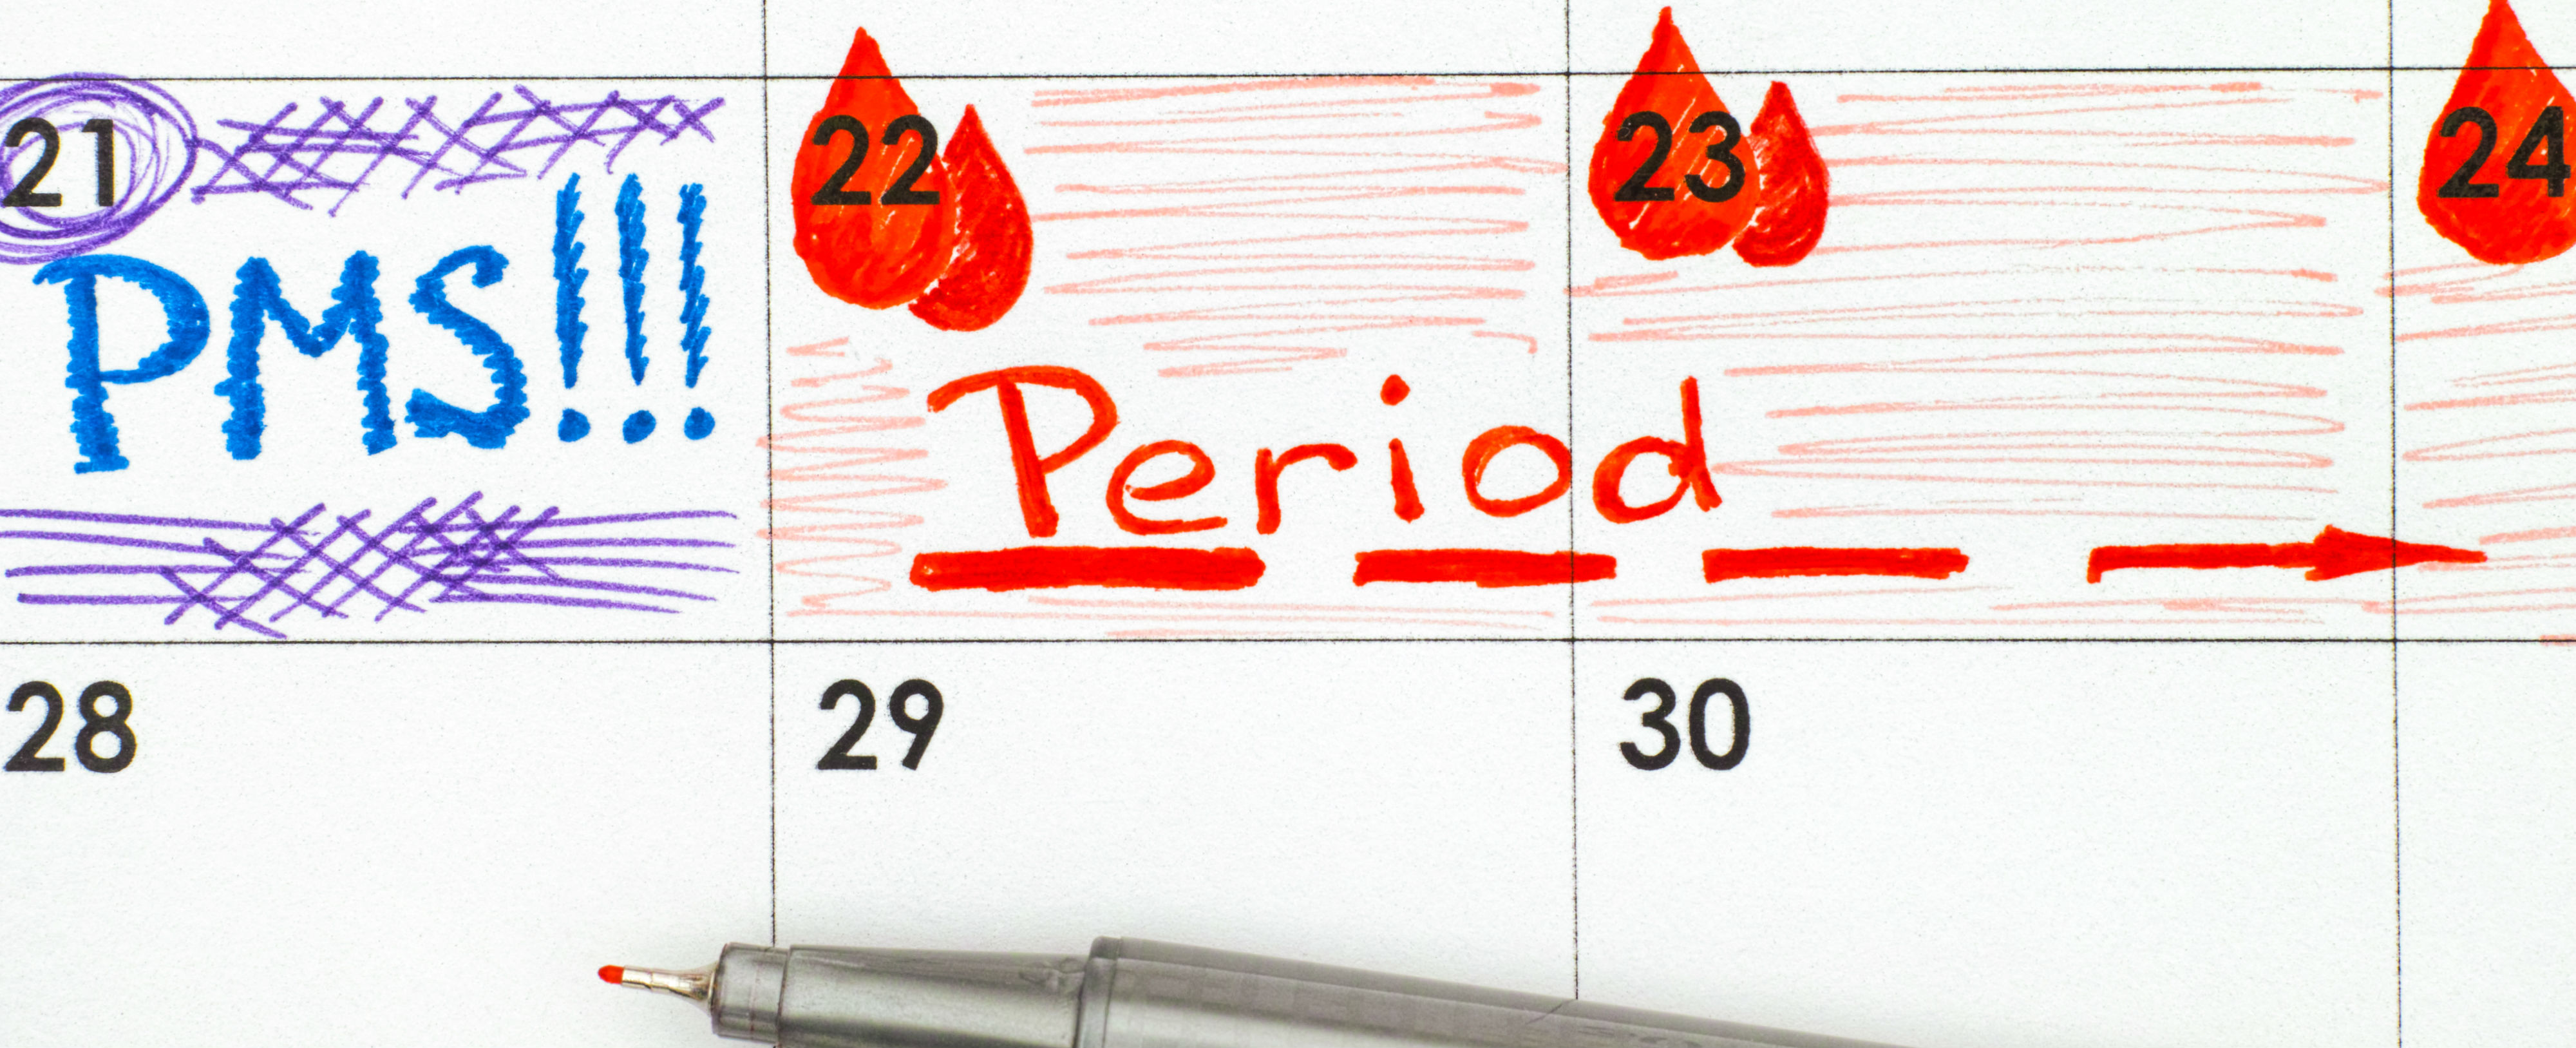 Period Myths Busted  Young Scot-7929